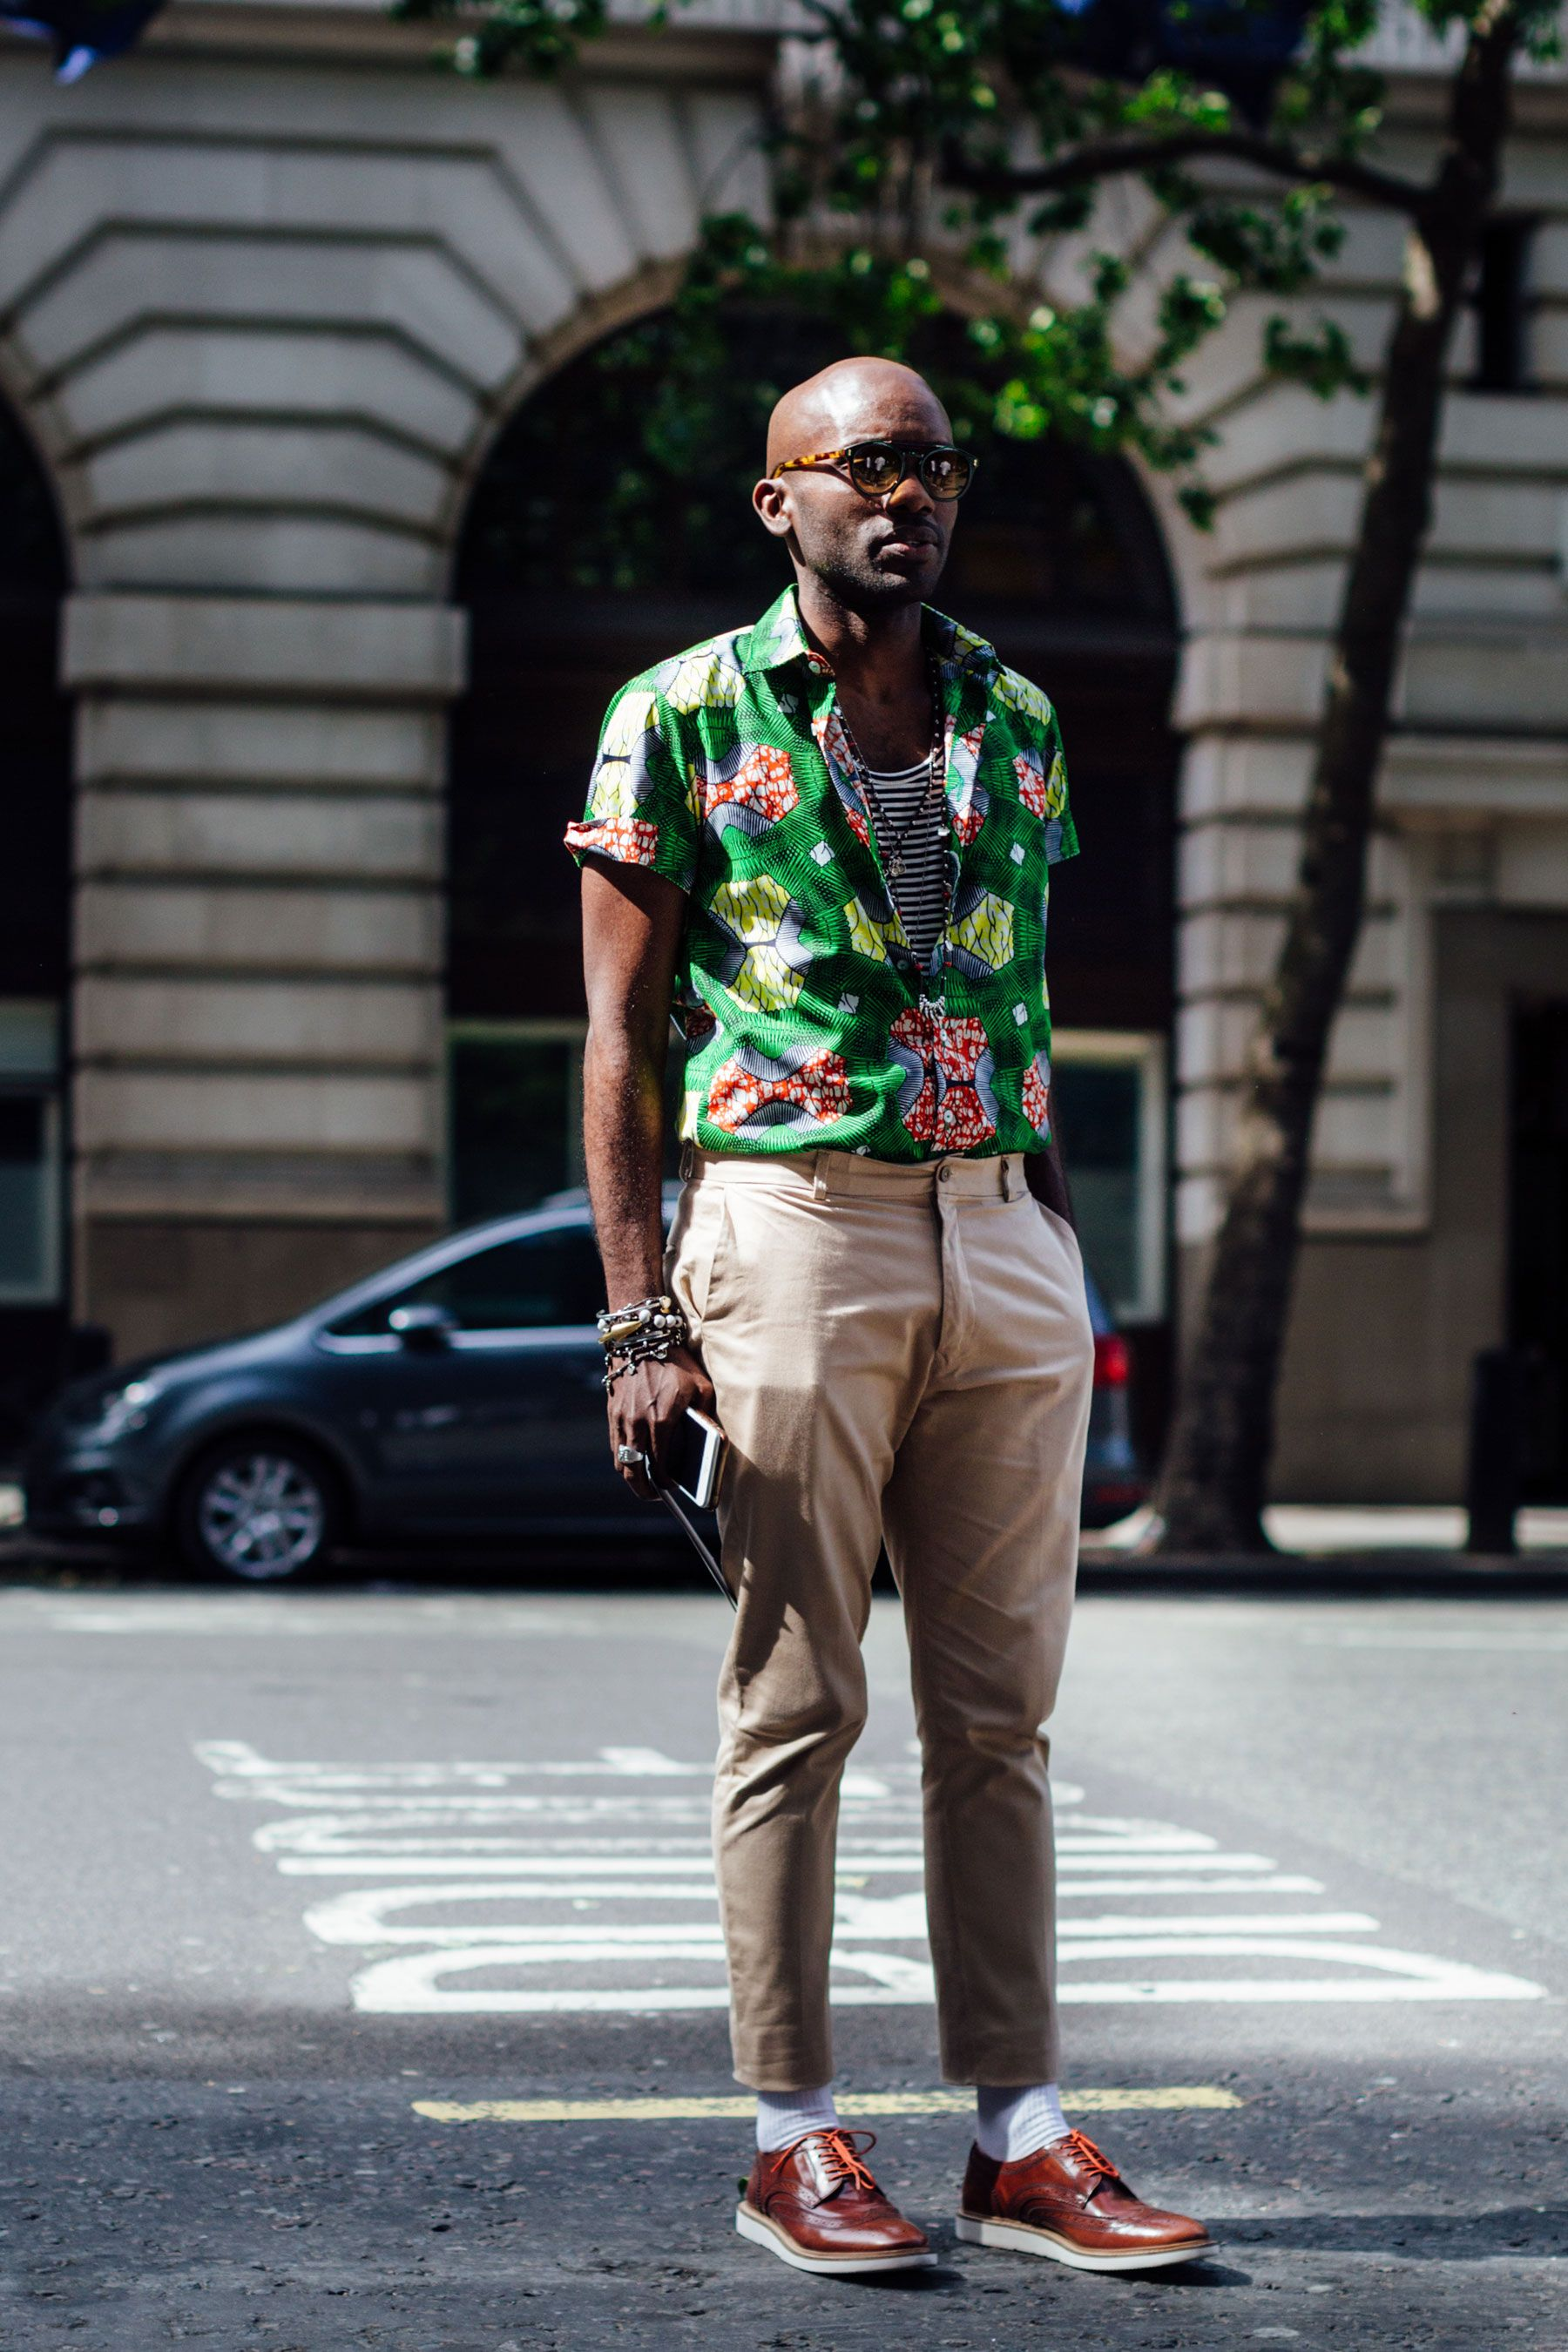 London Fashion Week Men 39 S Street Style Spring 2018 Day 2 Cloth Pinterest London Fashion